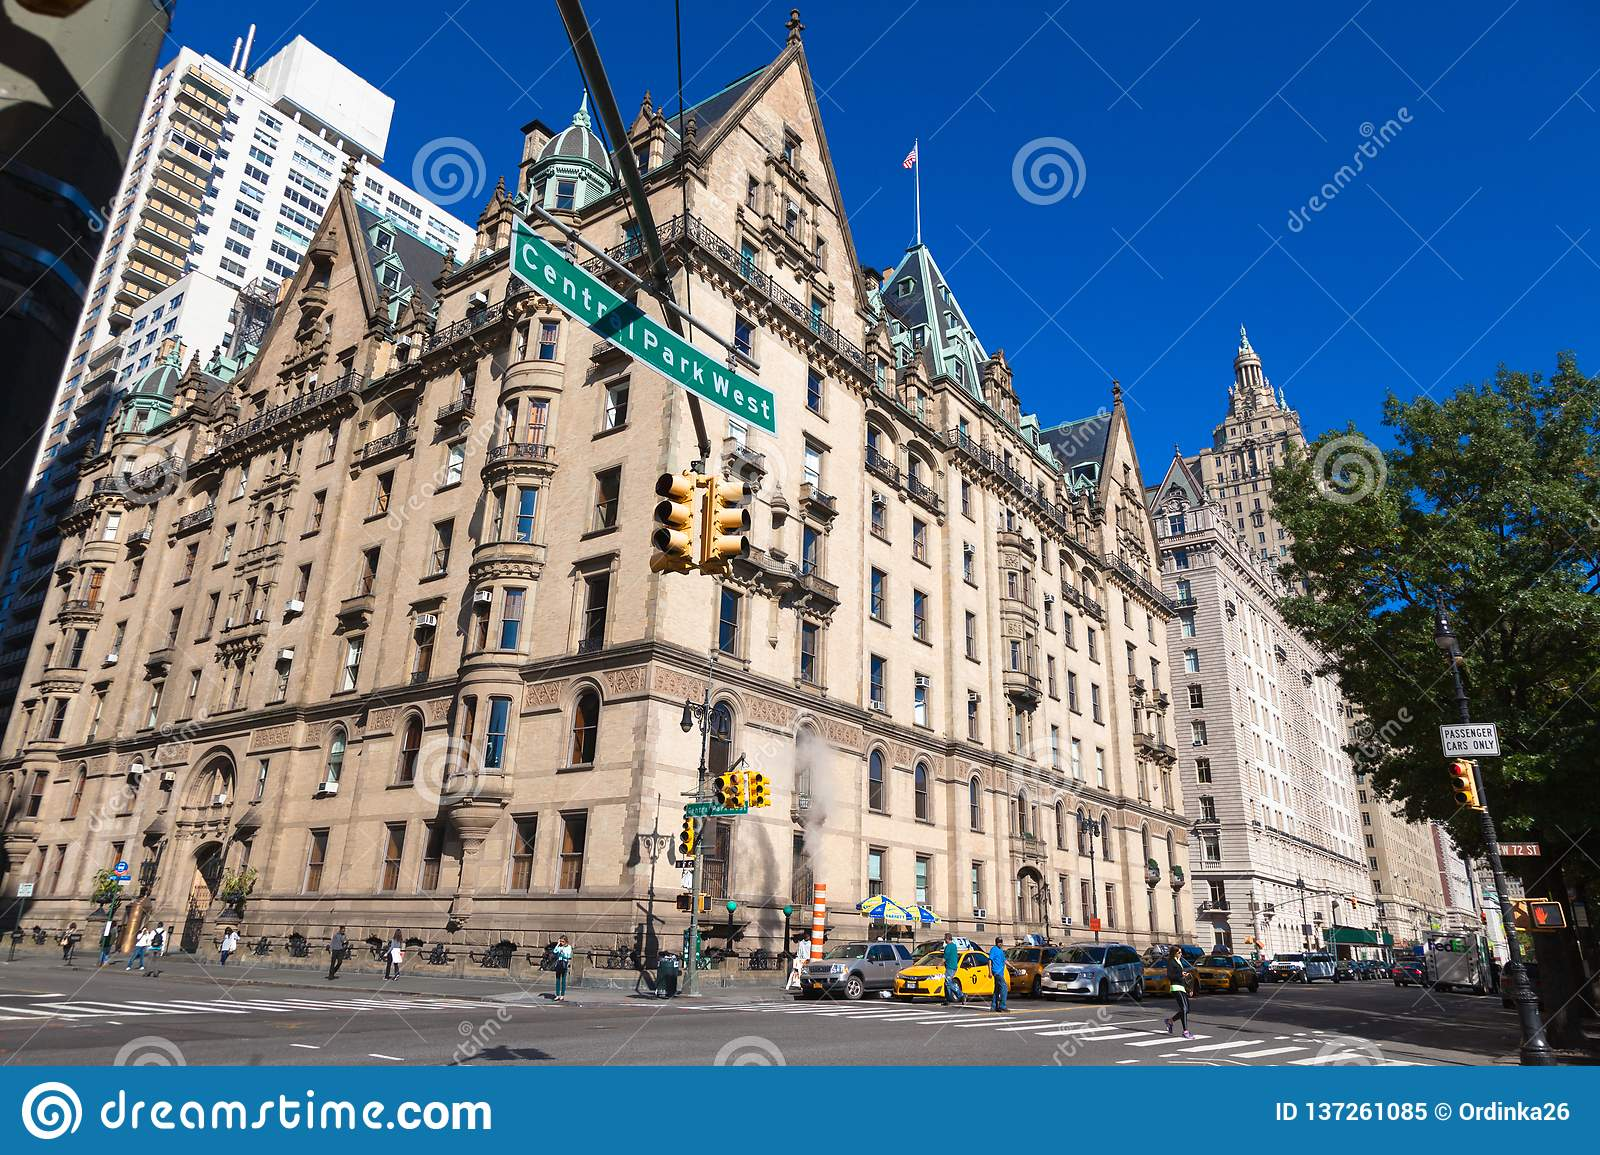 USA, NEW YORK - OCTOBER 15, 2013: Street Central Park West ...